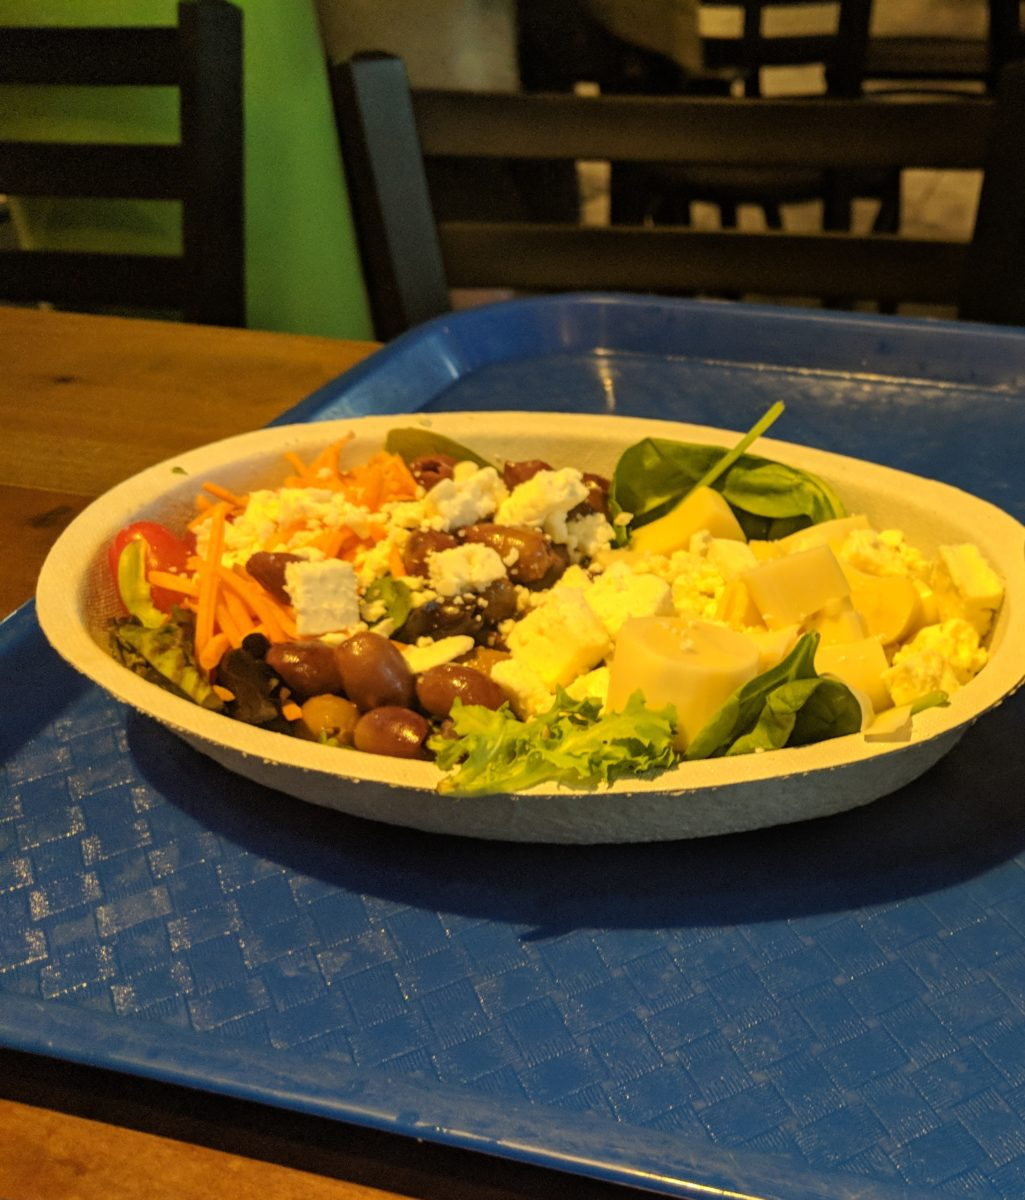 Enjoy the Amazon Salad at Waterway Grill at SeaWorld Orlando theme park